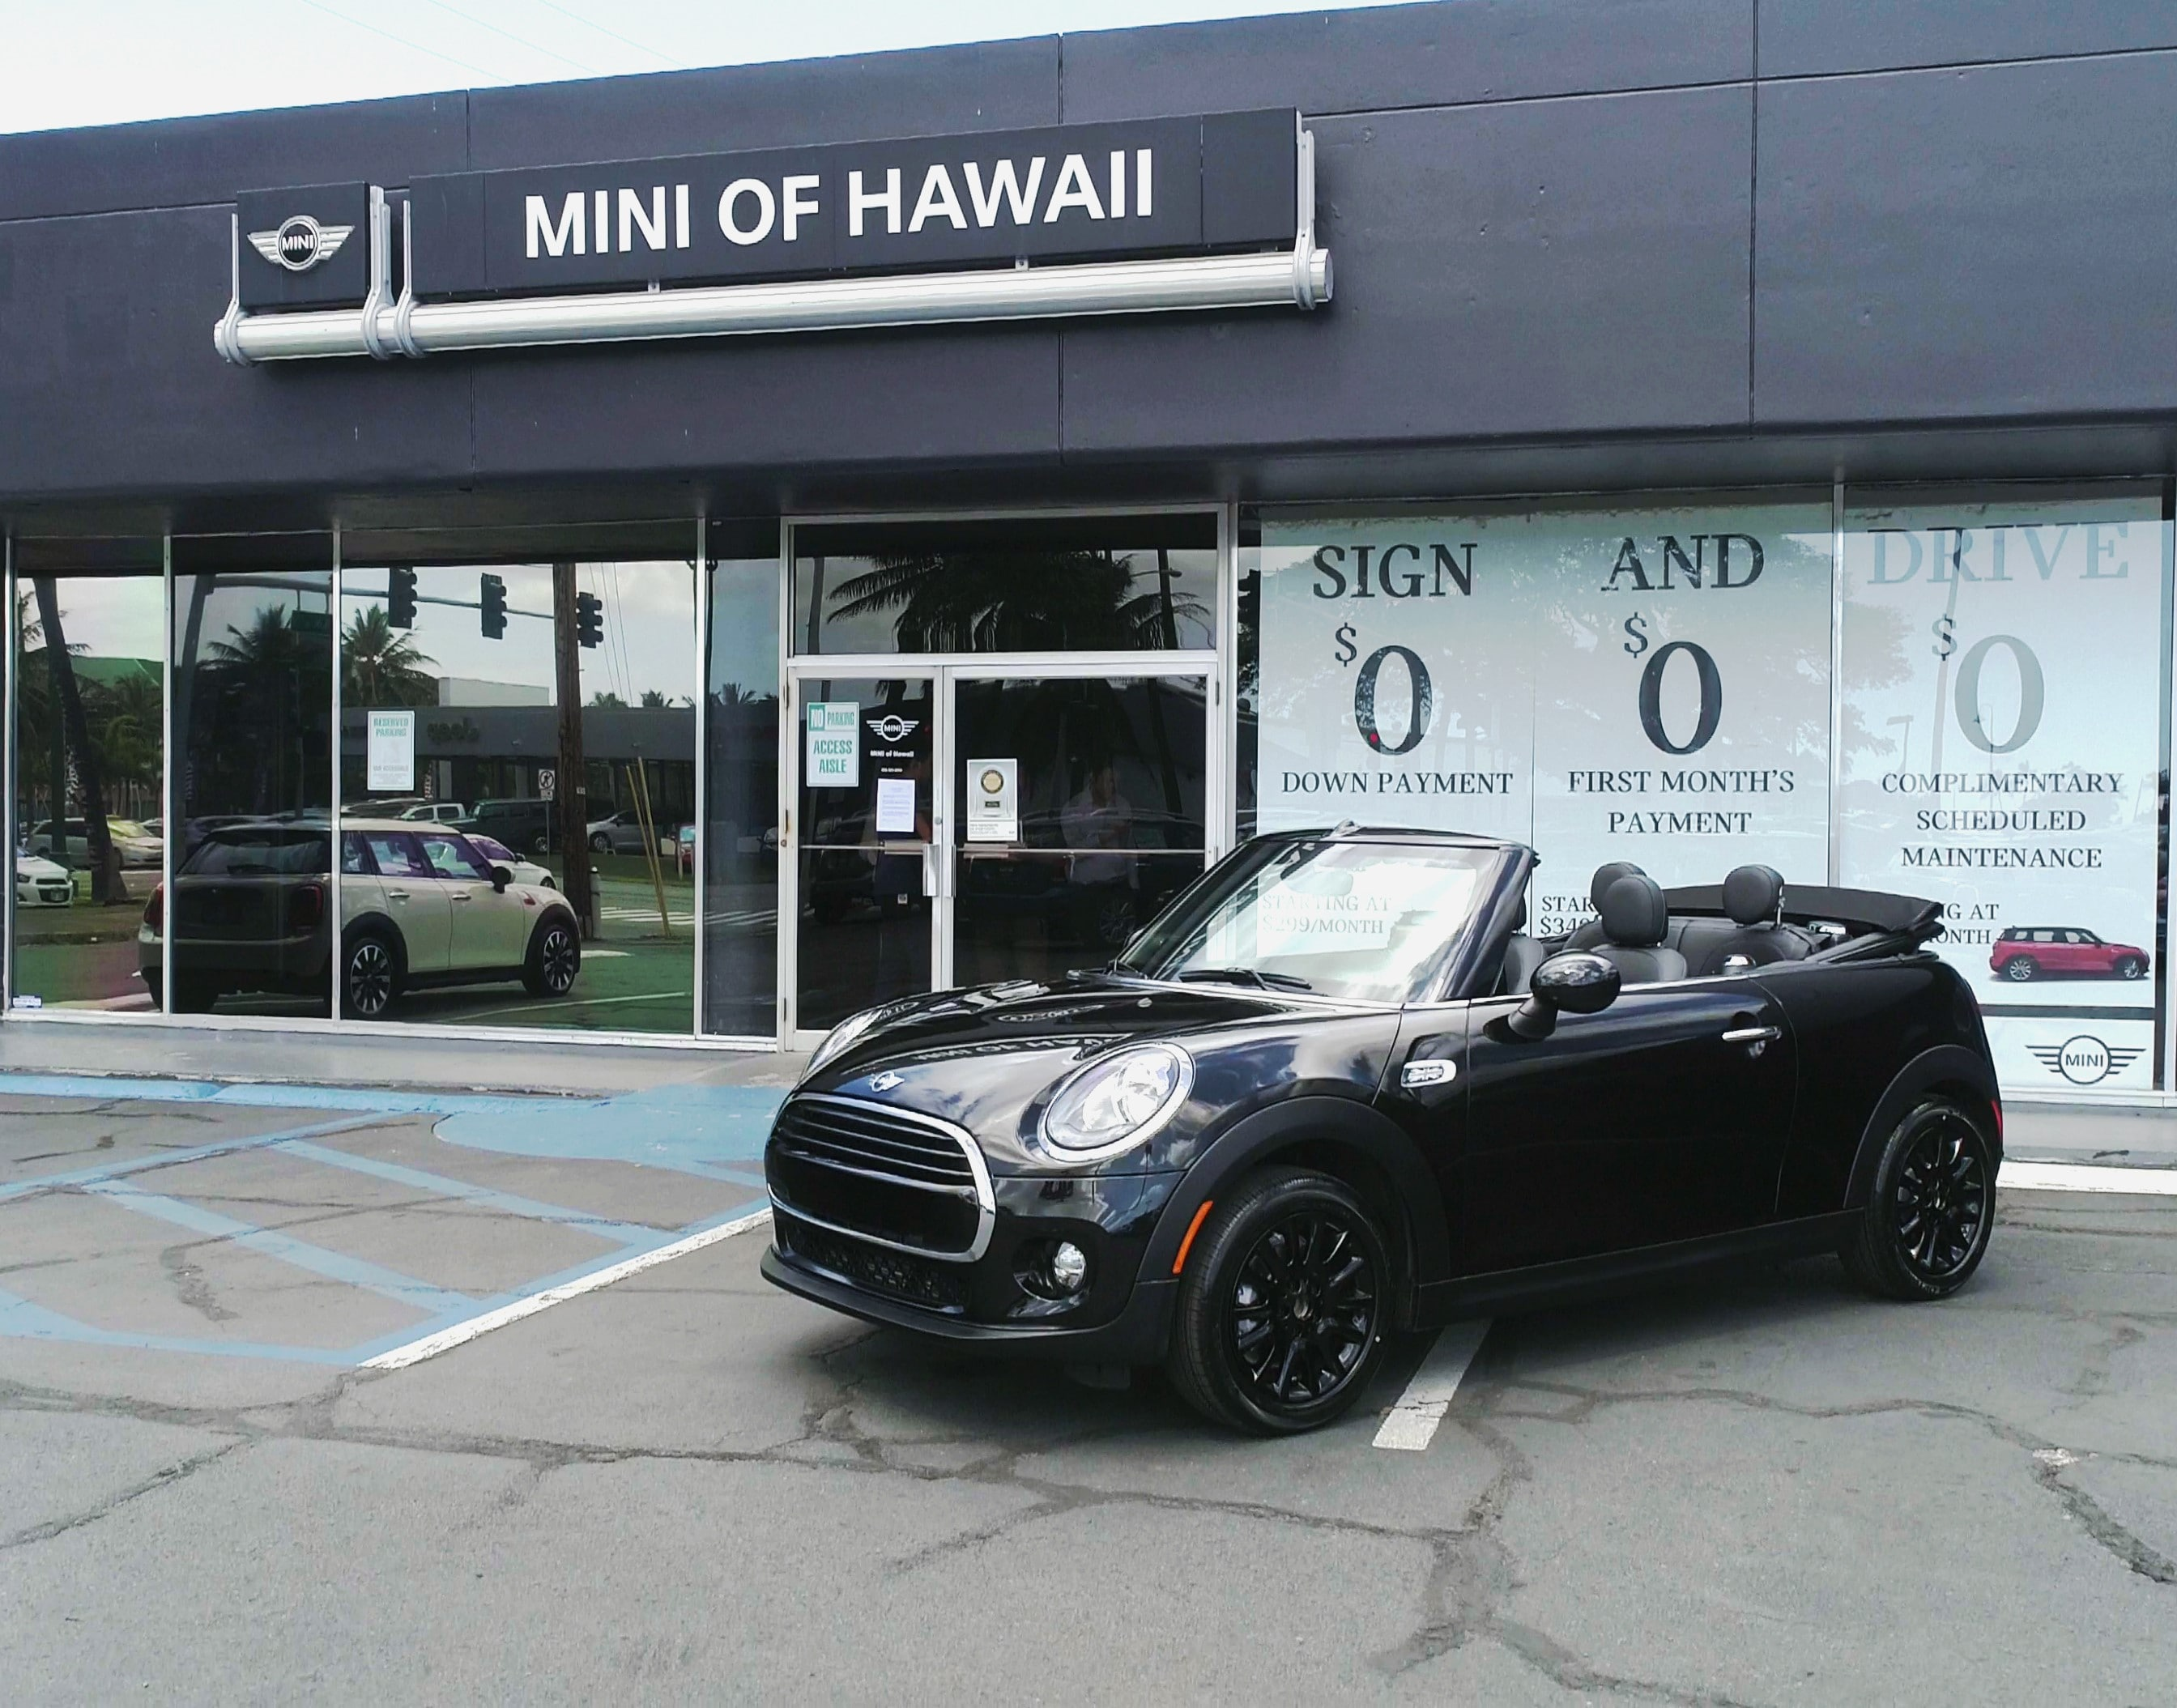 mini hawaii dealer photo 1 copy.jpg